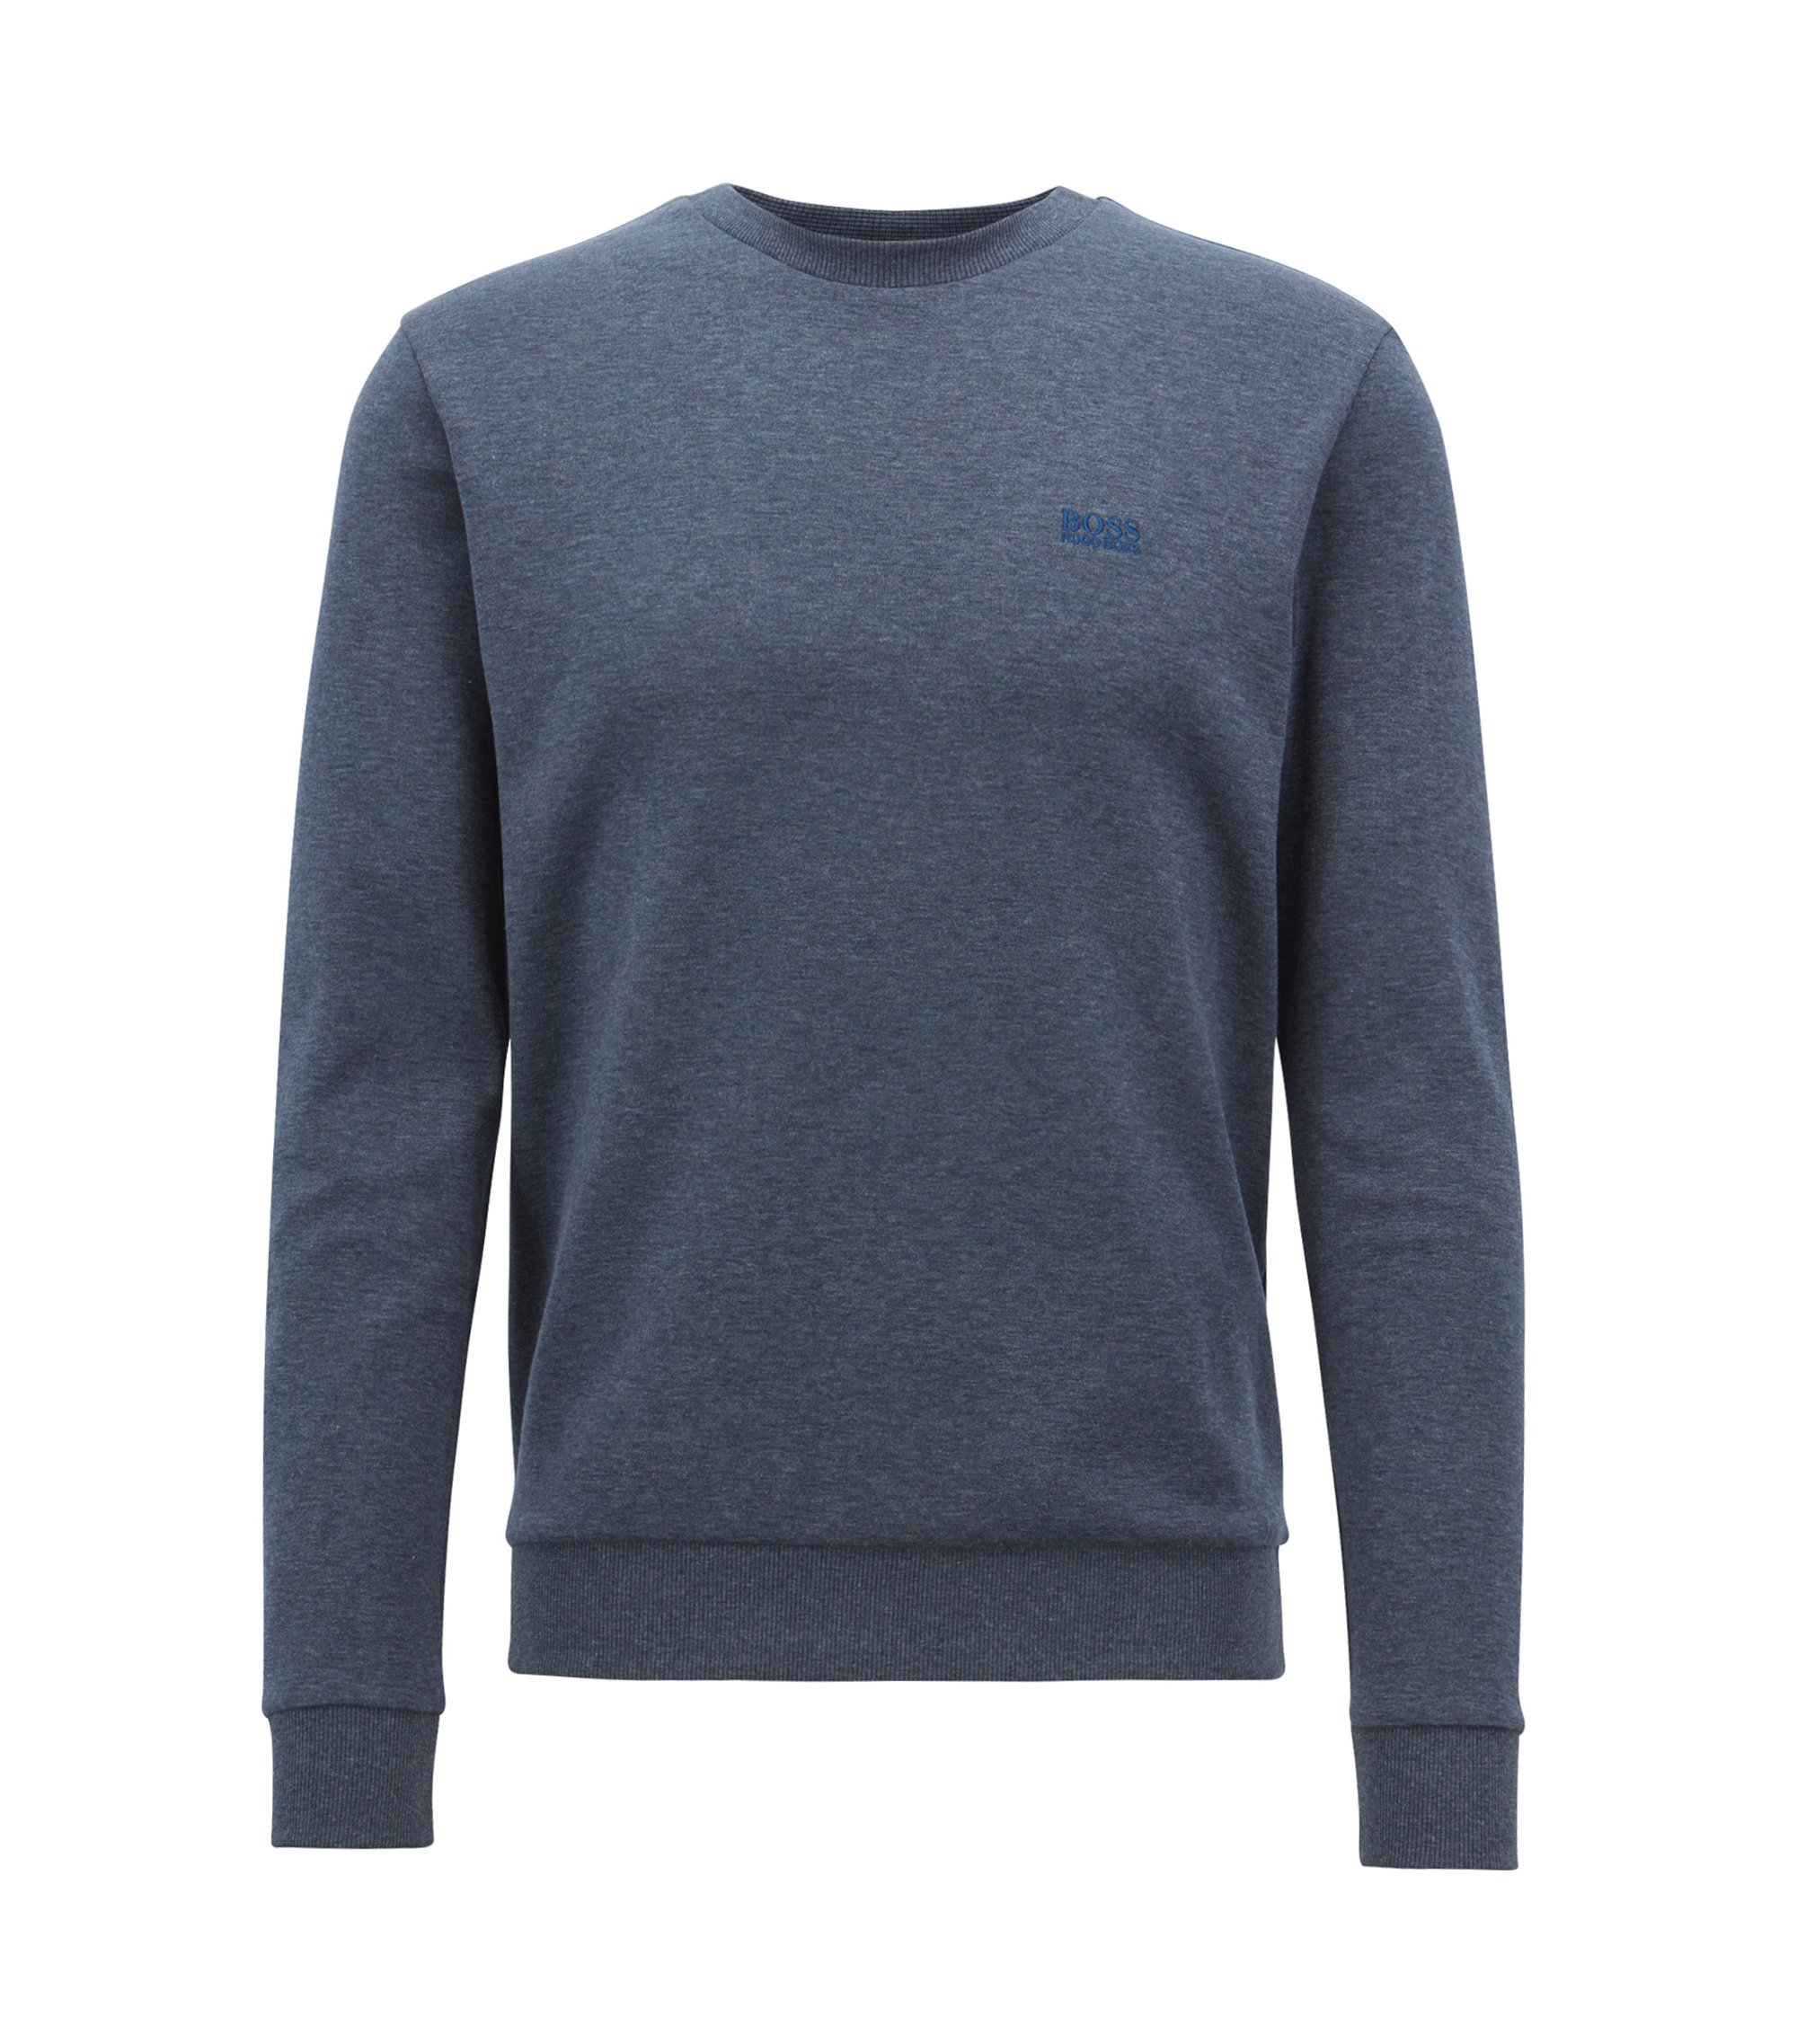 Crew-neck sweatshirt in a double-faced cotton blend, Dark Blue